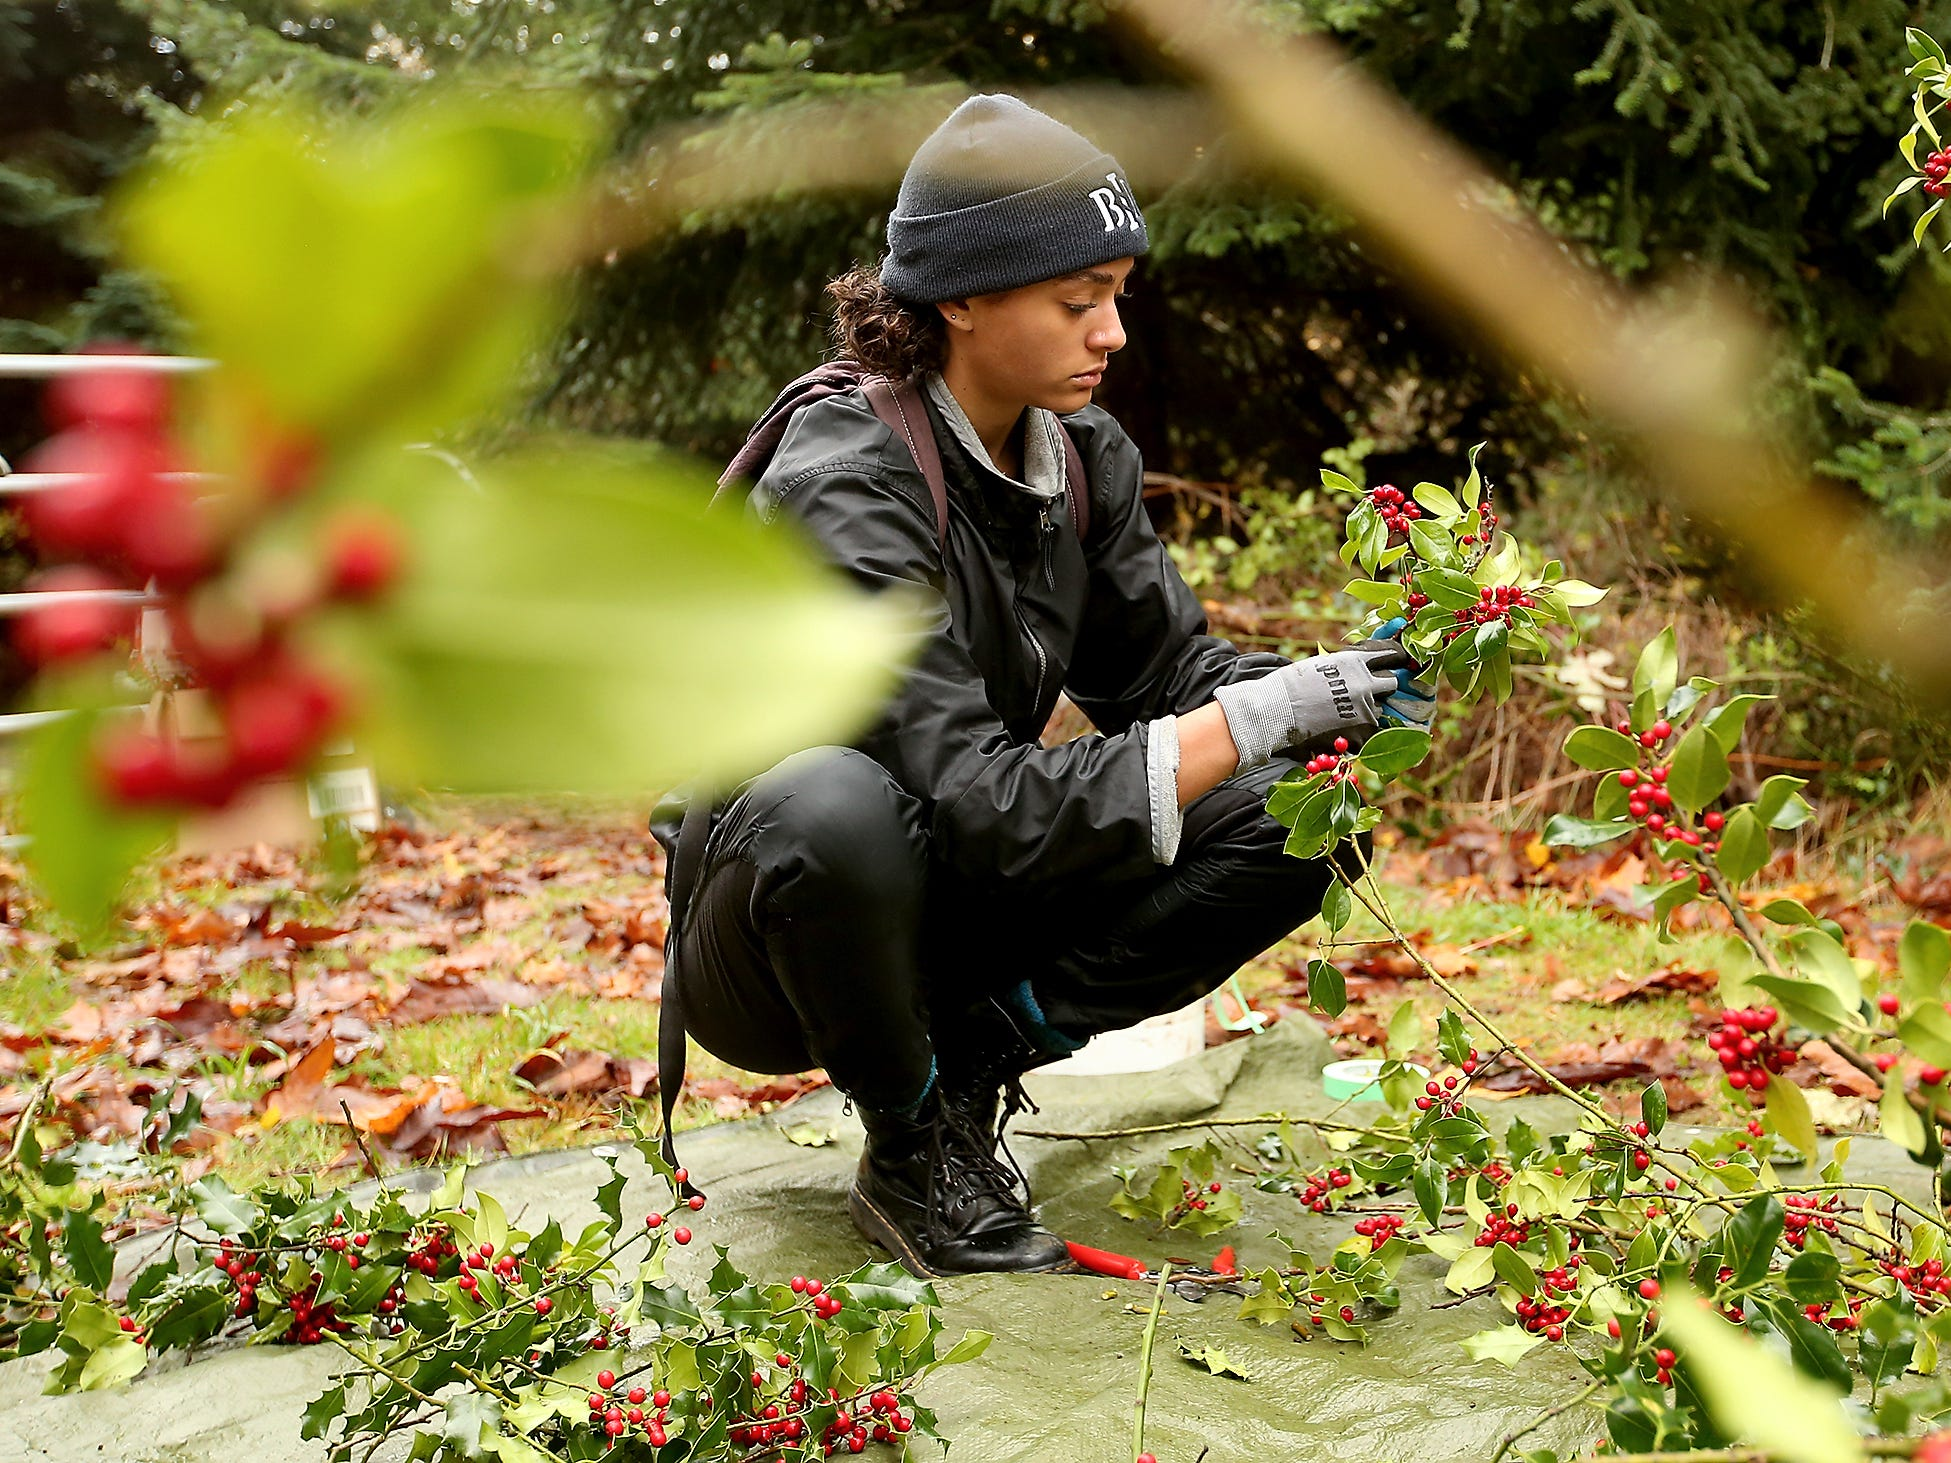 Volunteer Naszya Bradshaw cuts and bundles holly at Bainbridge Island's M&E property on Friday, November 23, 2018. The annual event, organized by Sustainable Bainbridge's Weed Warriors, cuts down a holly tree and volunteers tag each bundle with a card carrying information about the invasive habits of holly, methods for disposing of holly, and plants that can be substituted. The bundles will be given away for free at the Bainbridge Island Senior Center Christmas Sale on Saturday, November 24th.